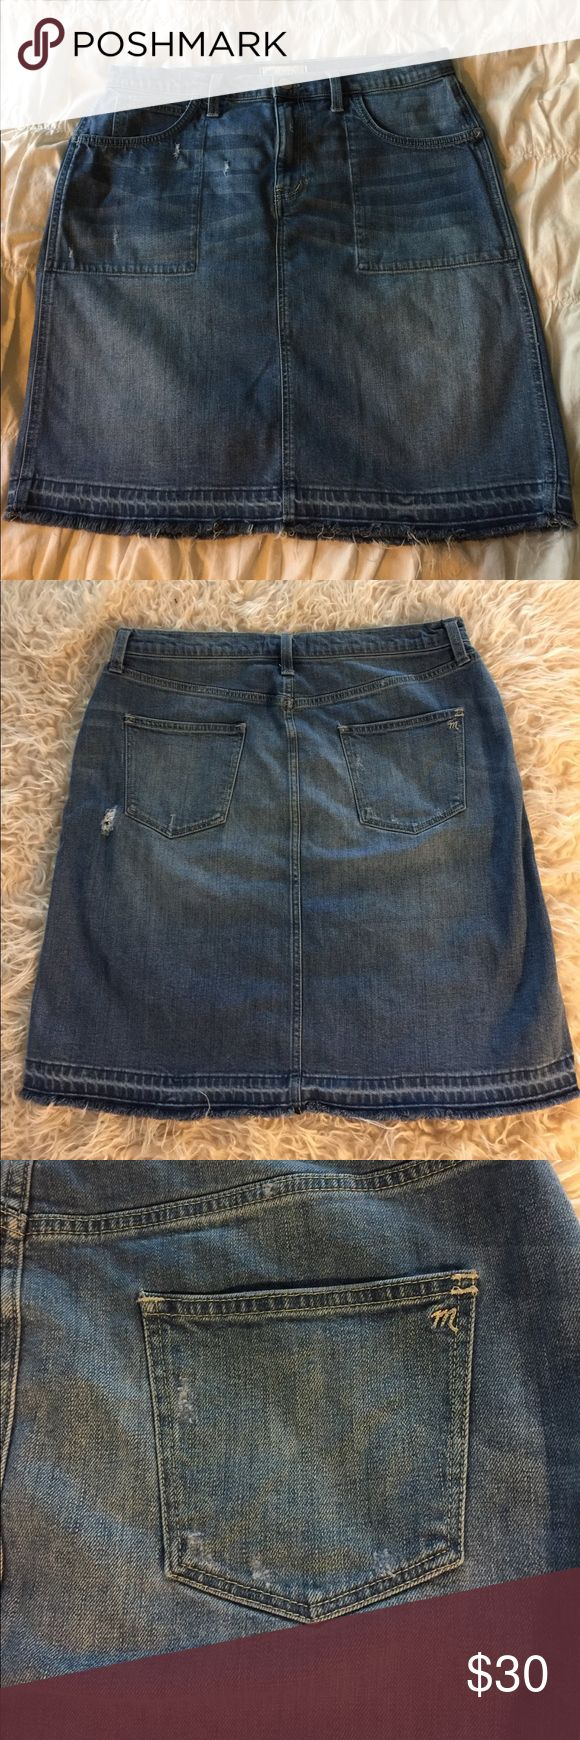 Distressed Maxwell jean skirt Super cute distressed jean skirt with raw edge hem. This would be super cute with tights and a chunky sweater for fall!! Skirts